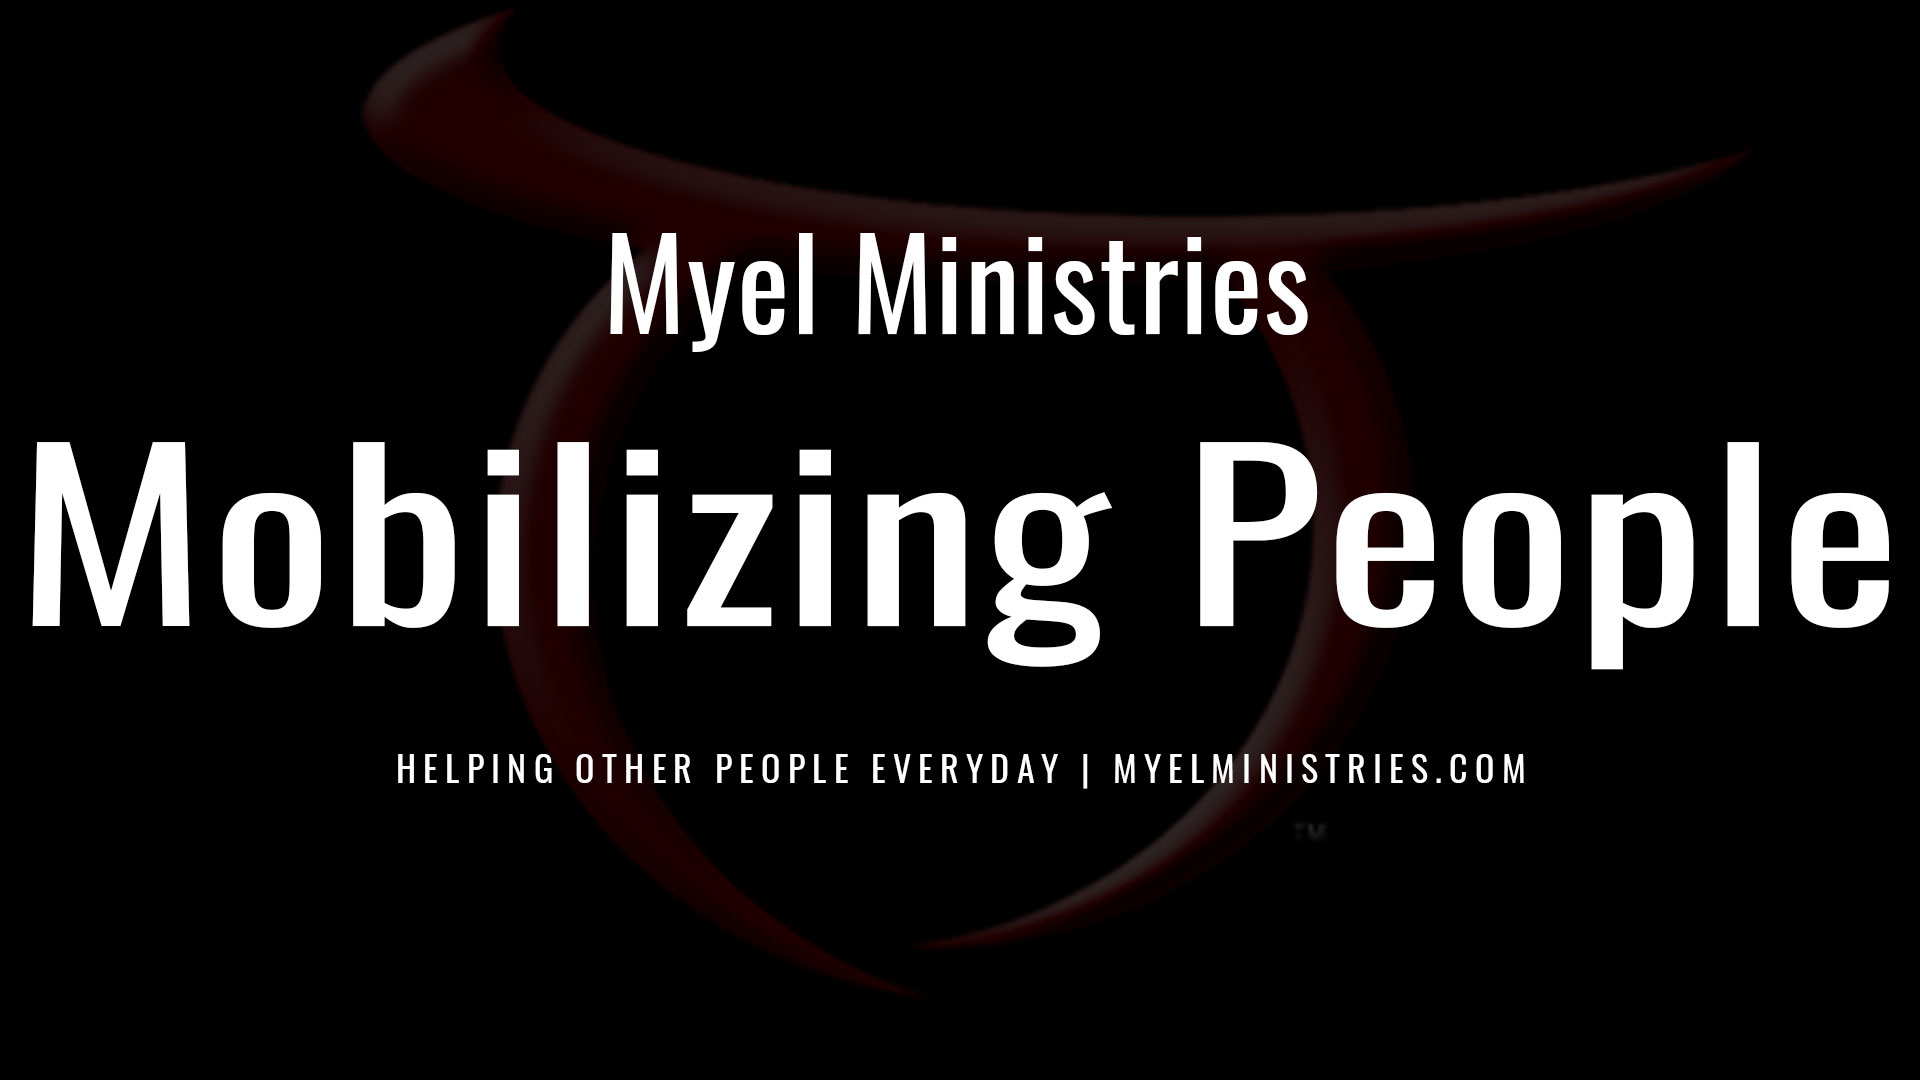 Mobilizing People through Christ